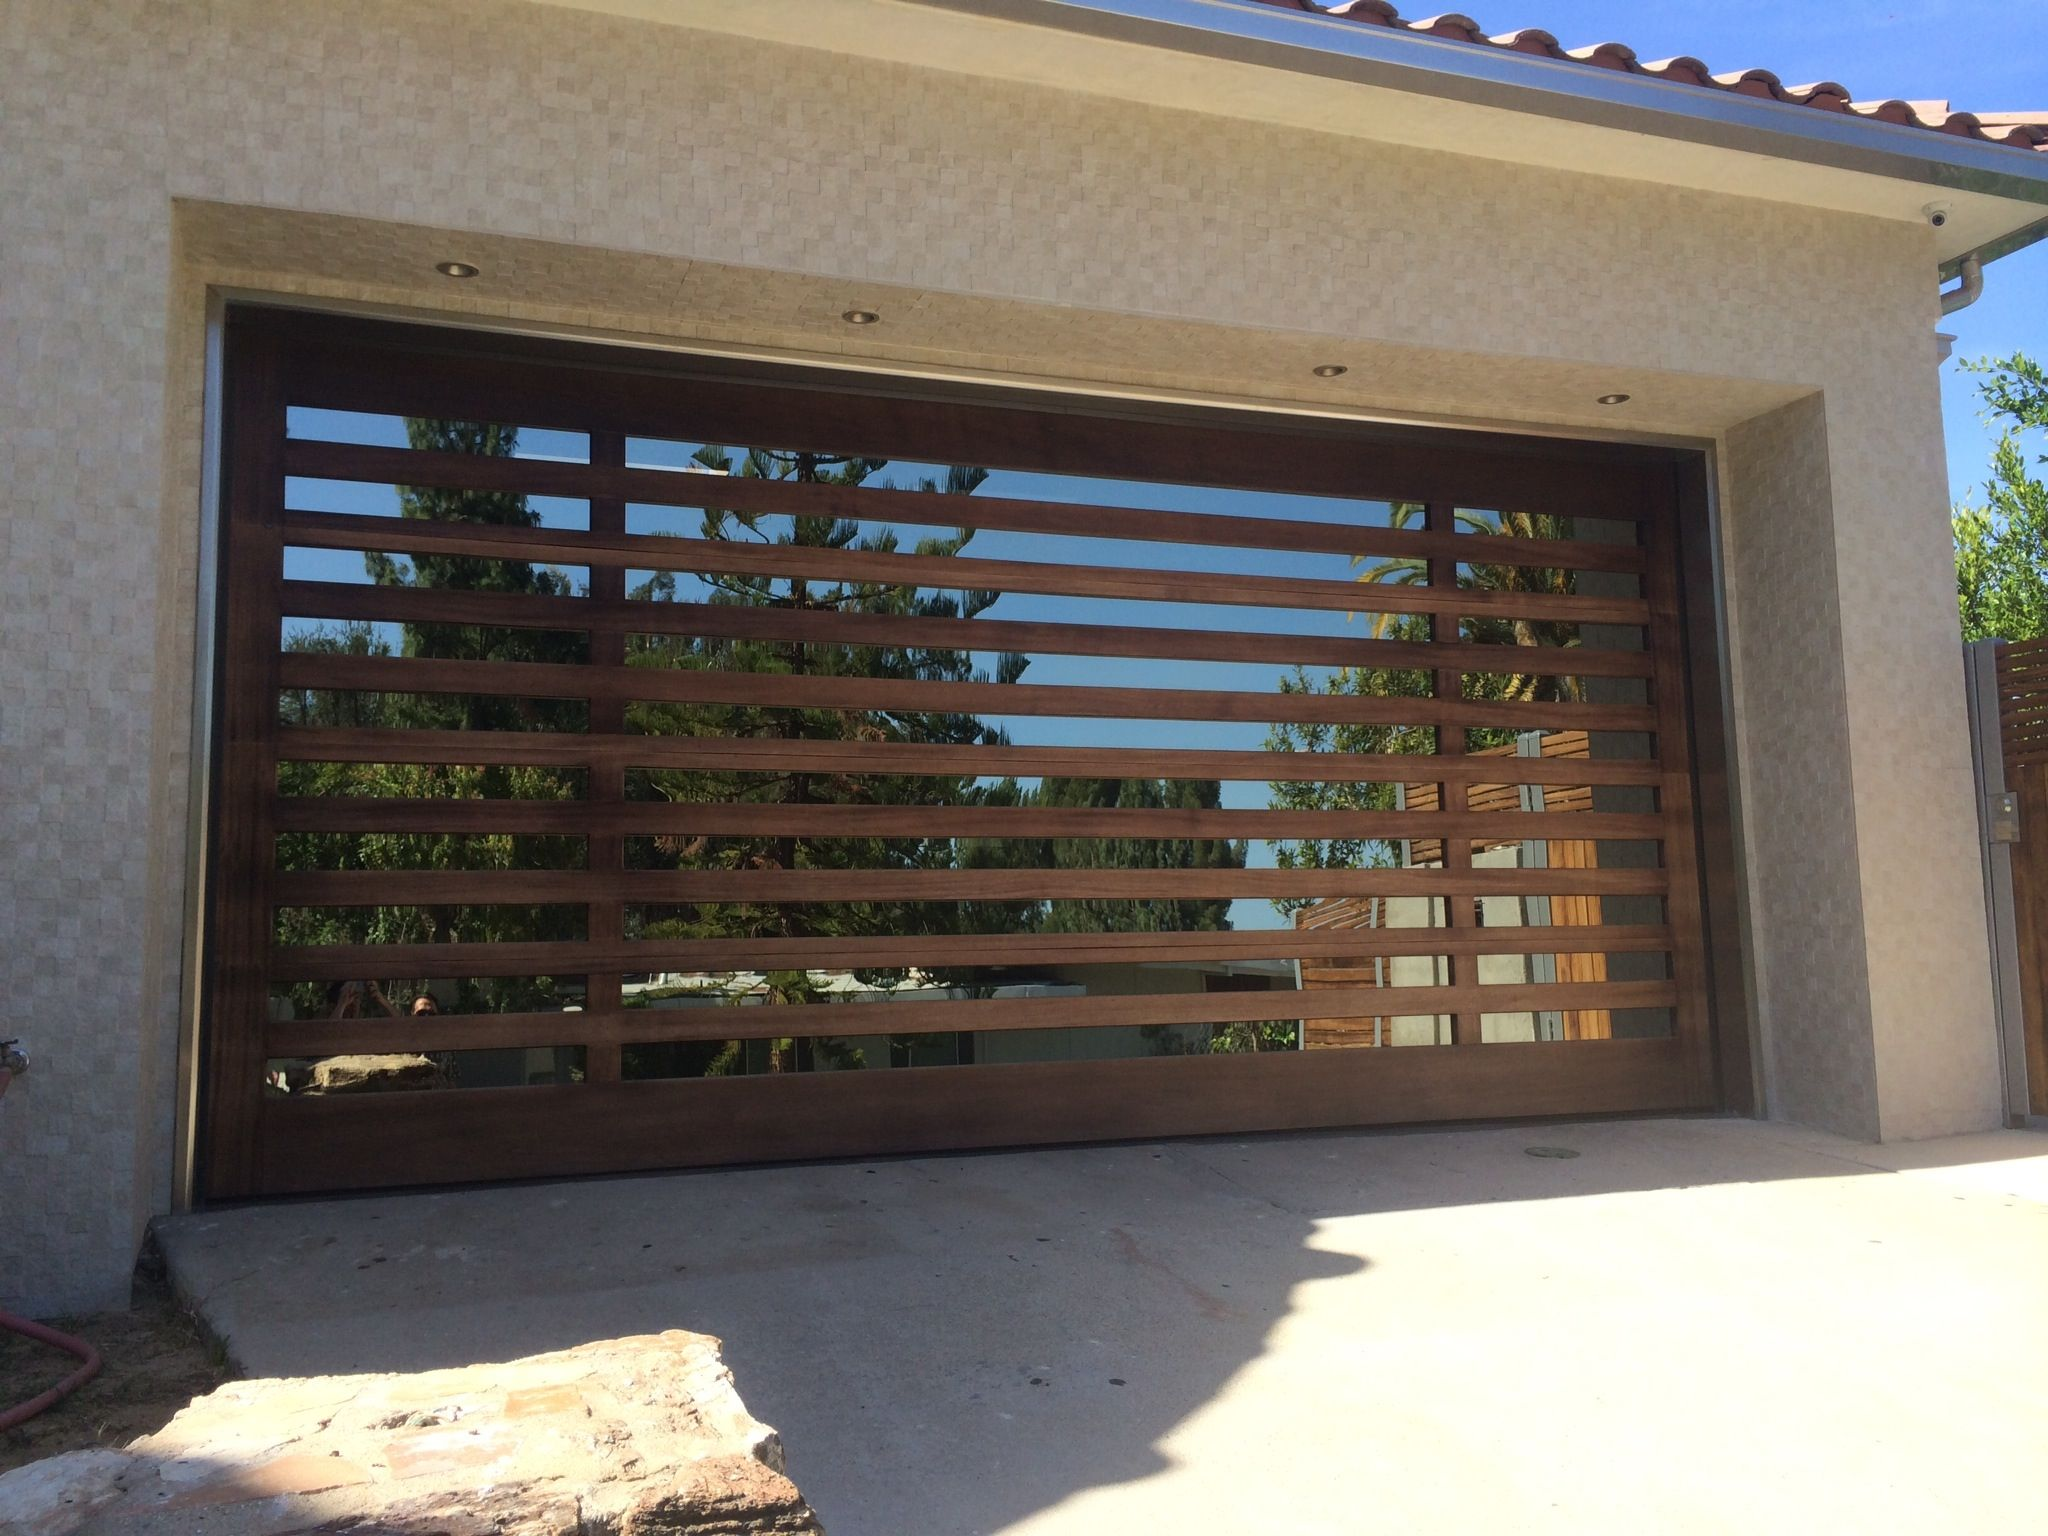 Mid century modern garage doors with windows - Custom Designed Modern Contemporary Garage Doors In La Orange Co